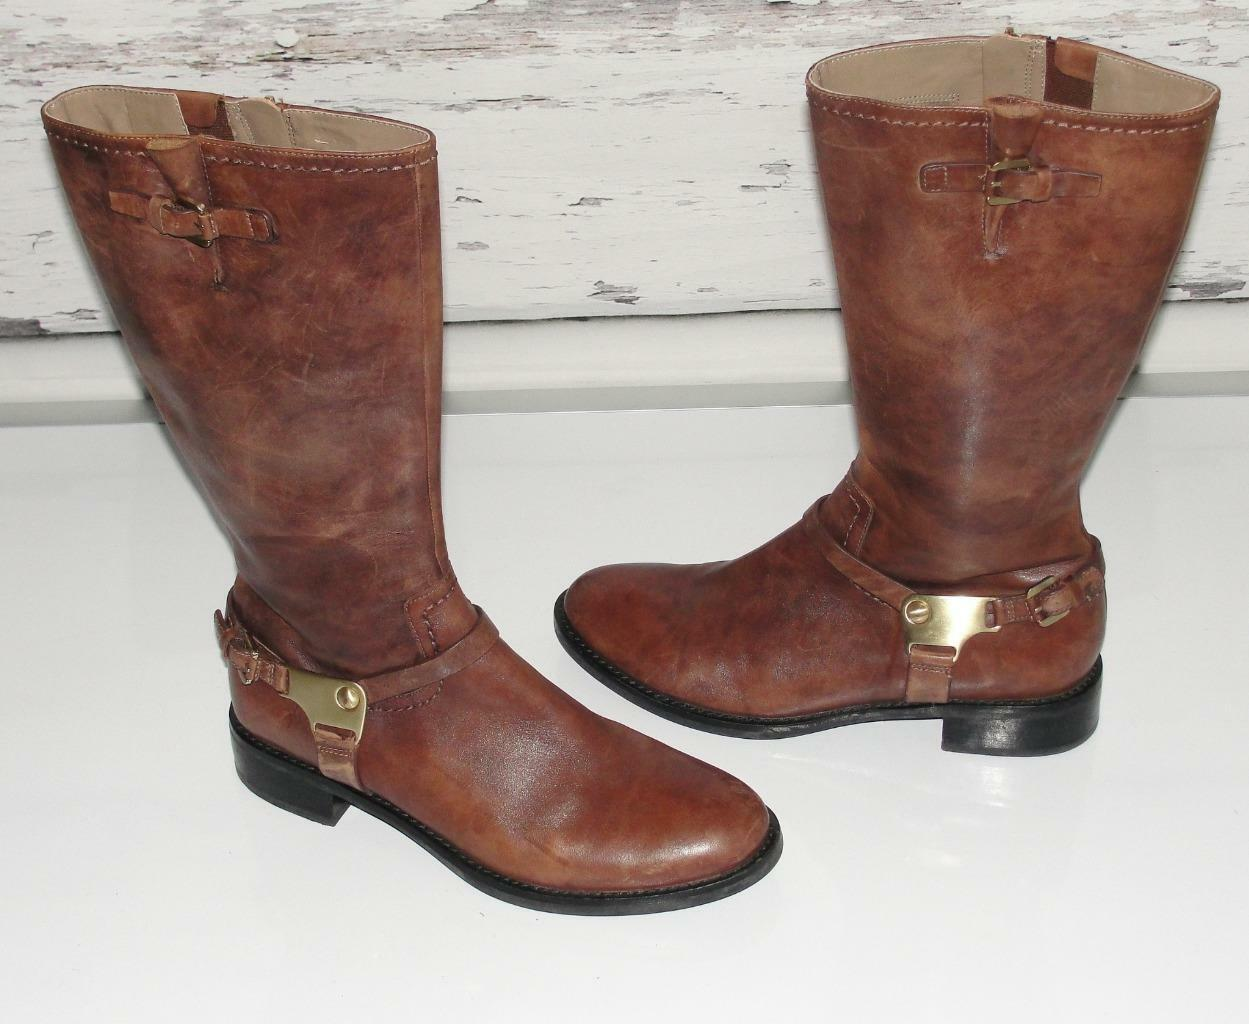 ECCOLEATHER HOBART TALL HARNESS BOOT EQUESTRIAN RIDING FLAT BOOTS39